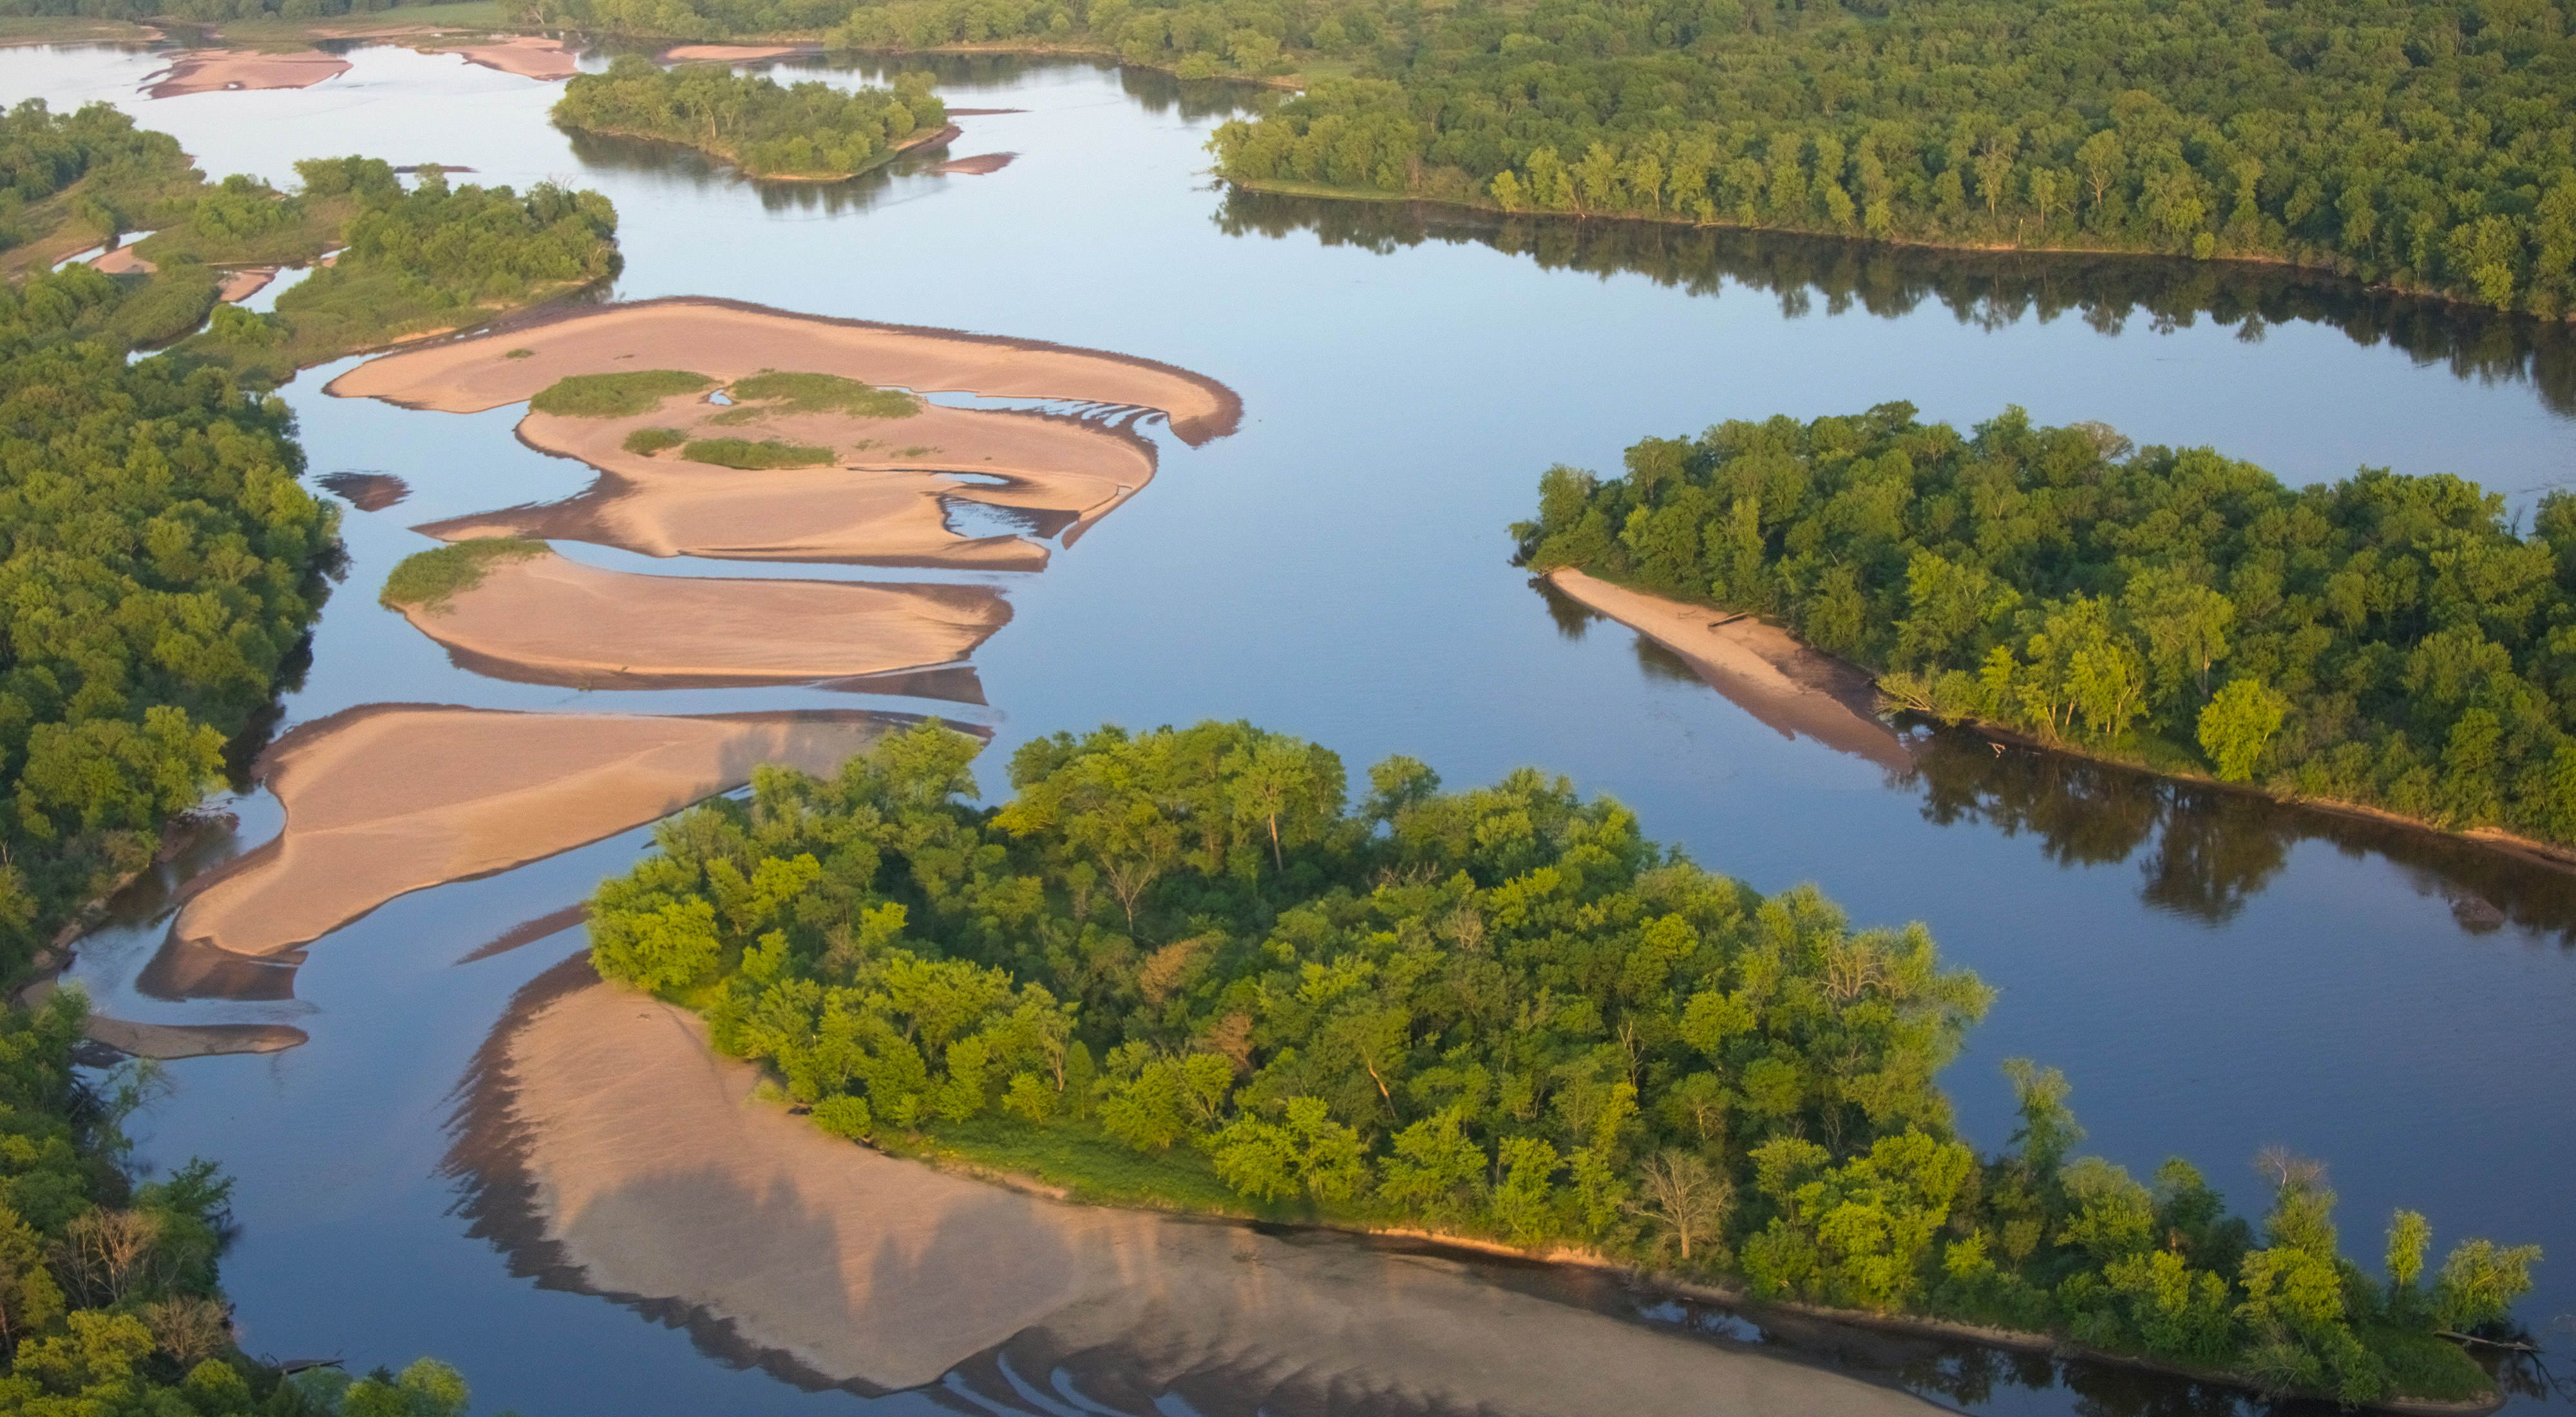 Aerial view of the Wisconsin River and its lush green islands.